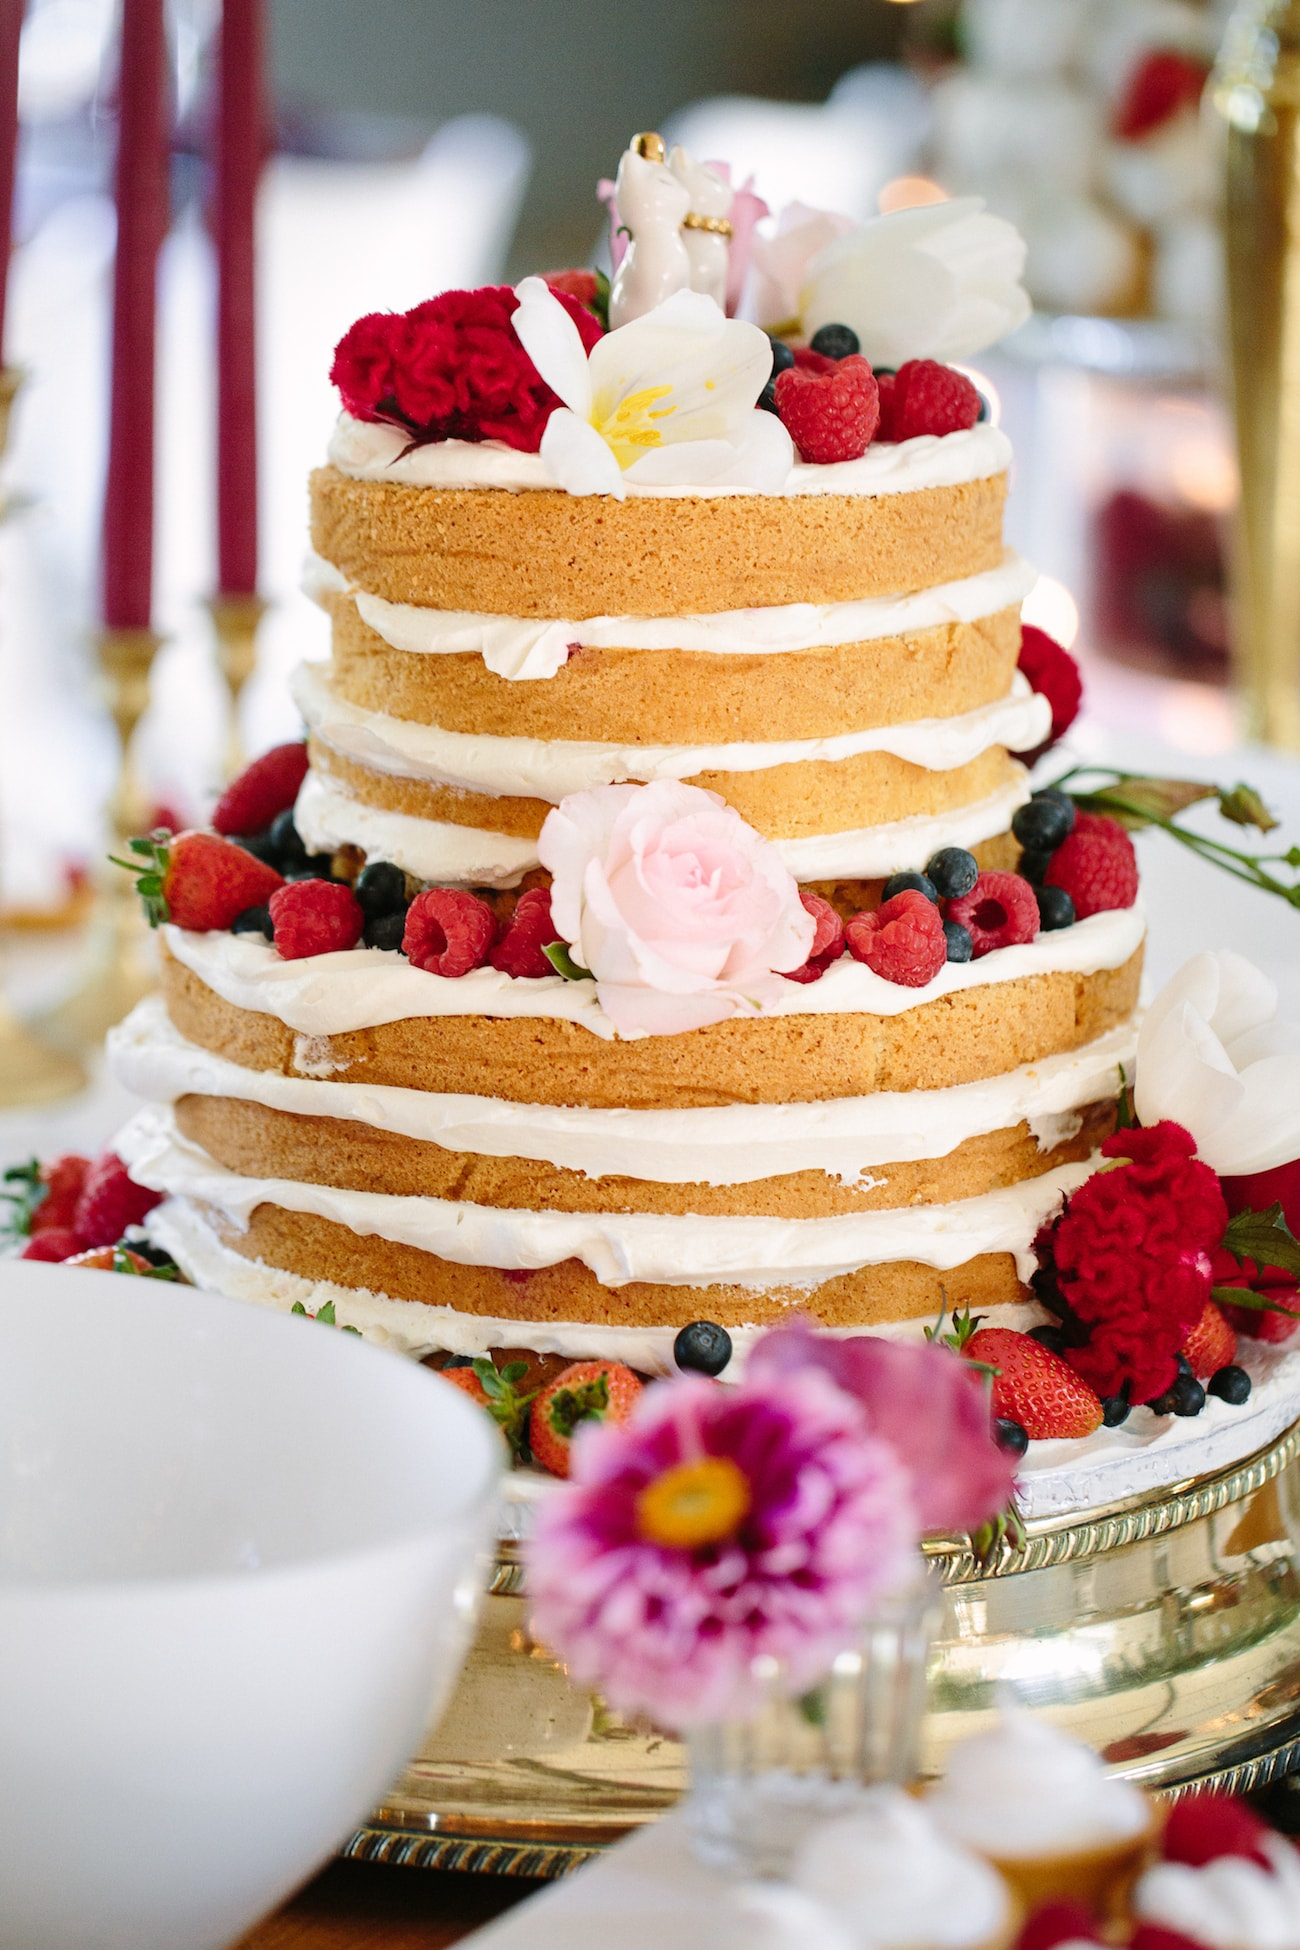 Naked Cake with Fruit Decoration | Image: Tasha Seccombe